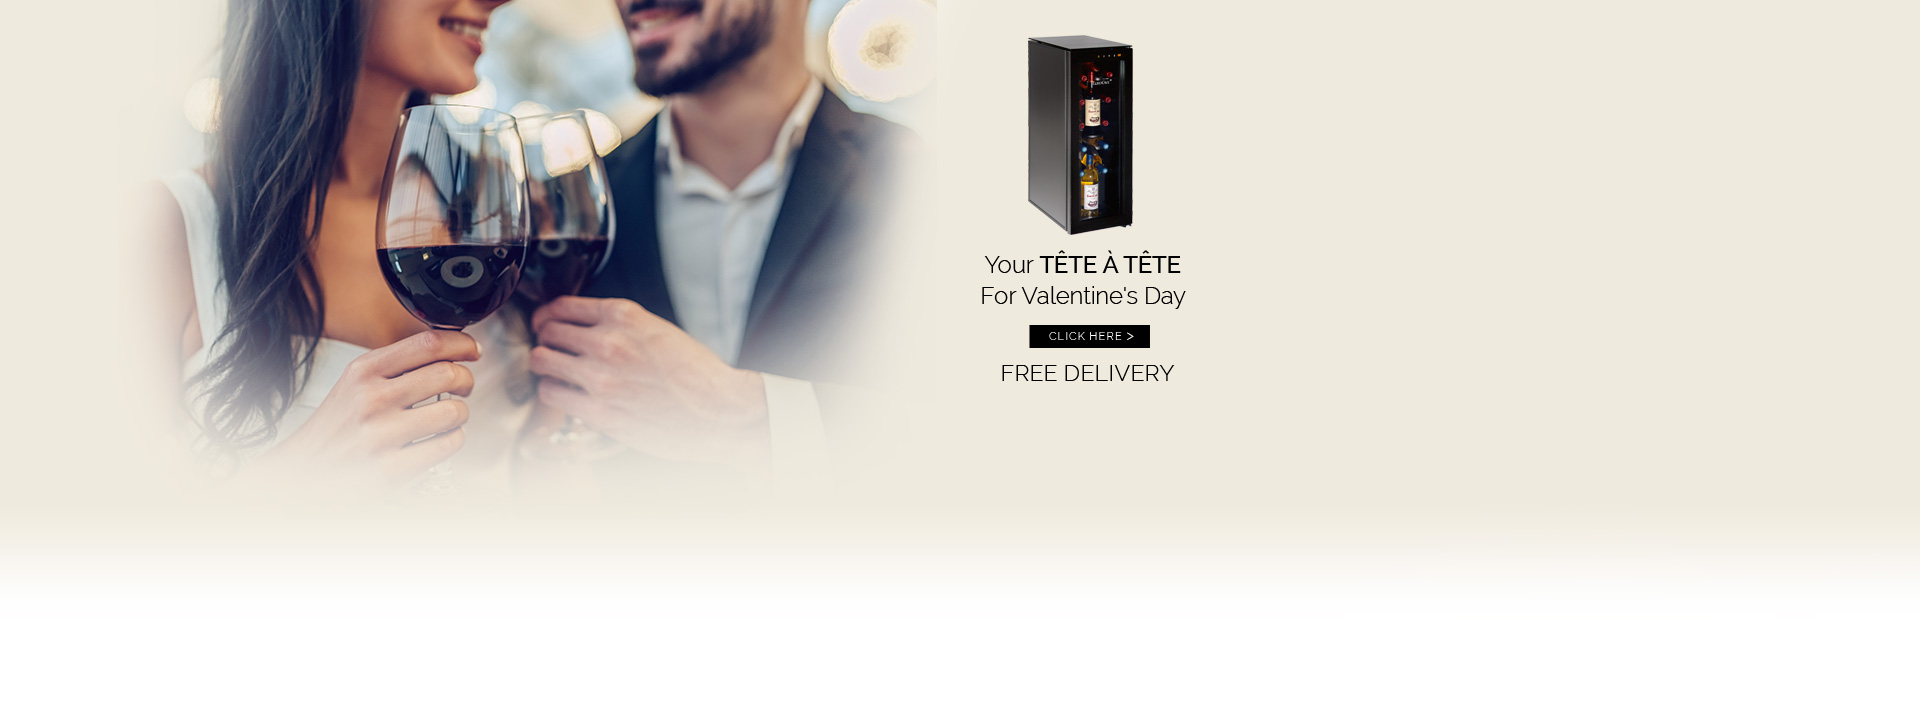 [image] Tete a Tete for Valentine's Day